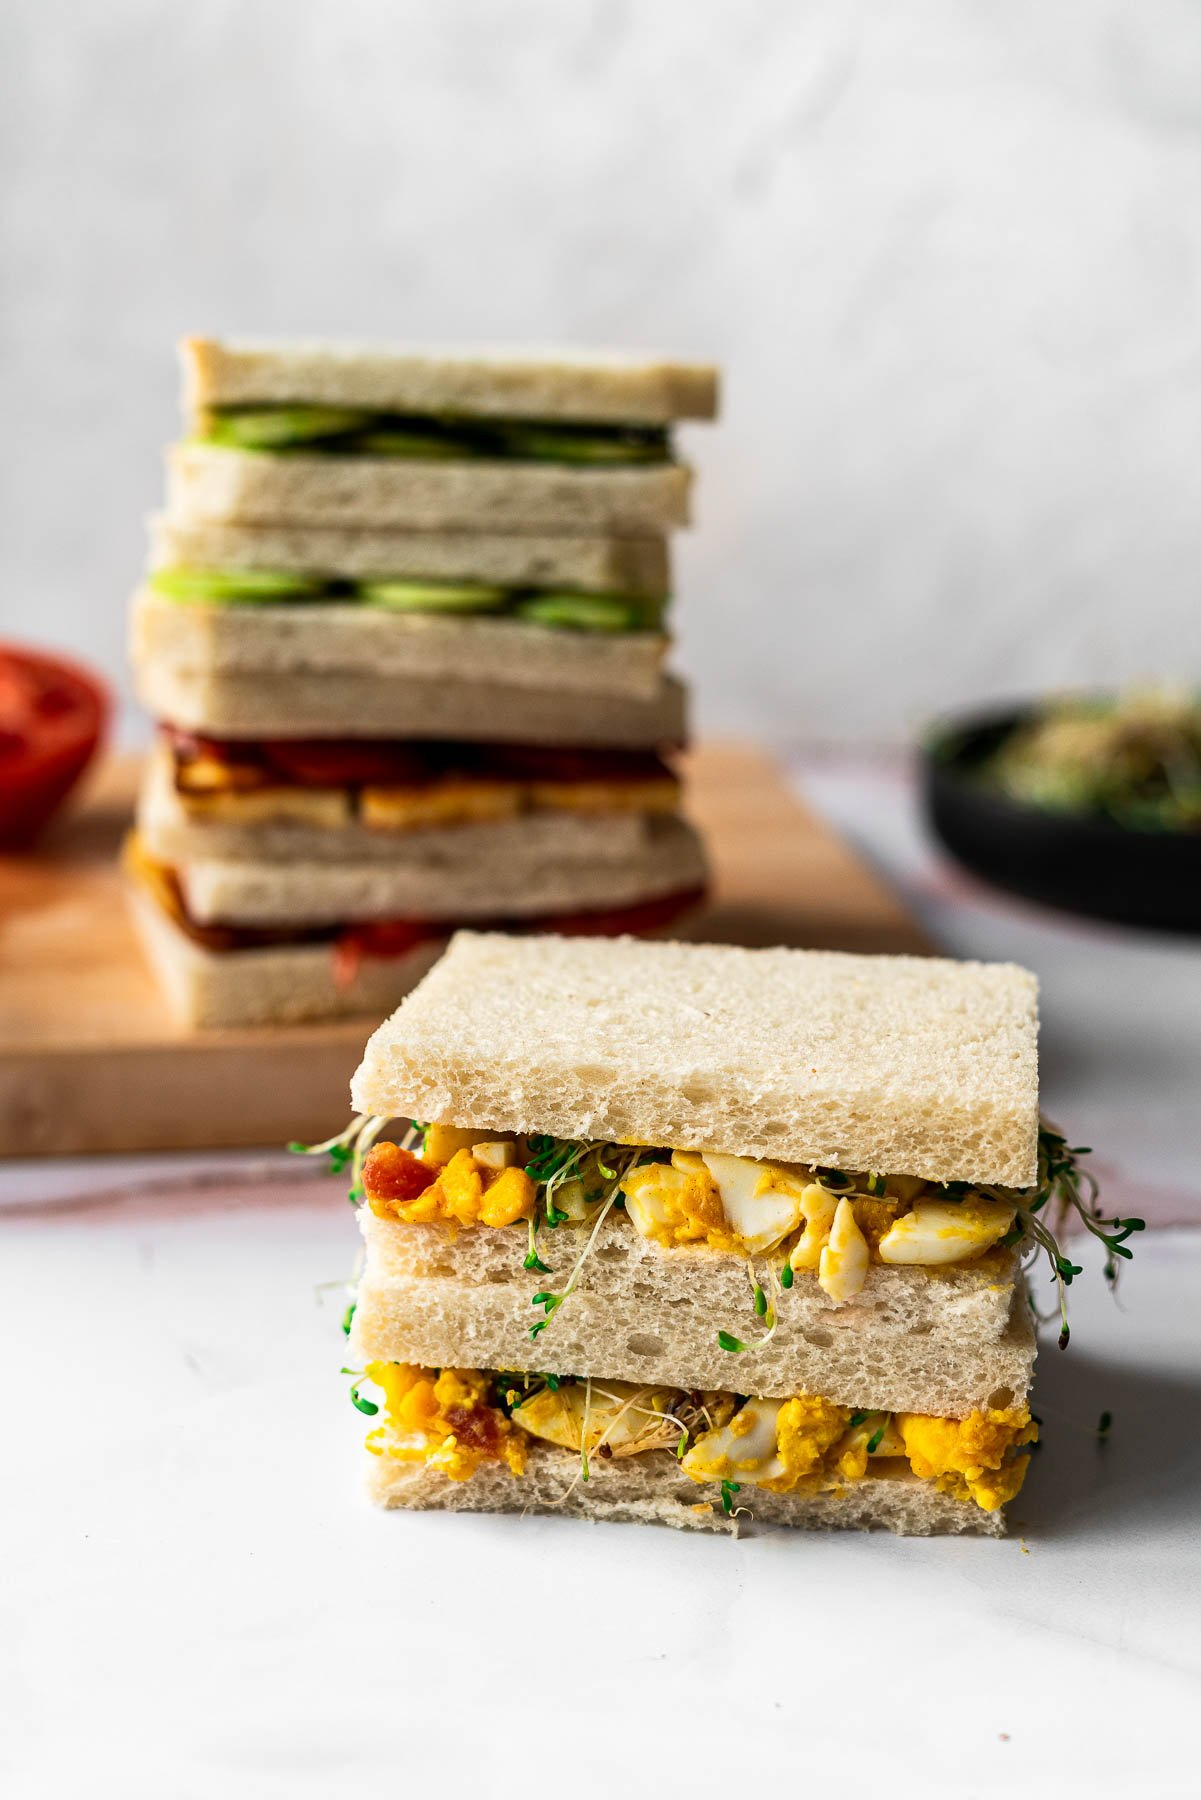 chutney egg salad tea sandwich in the forefront of the photo with stacked tea sandwiches in the back